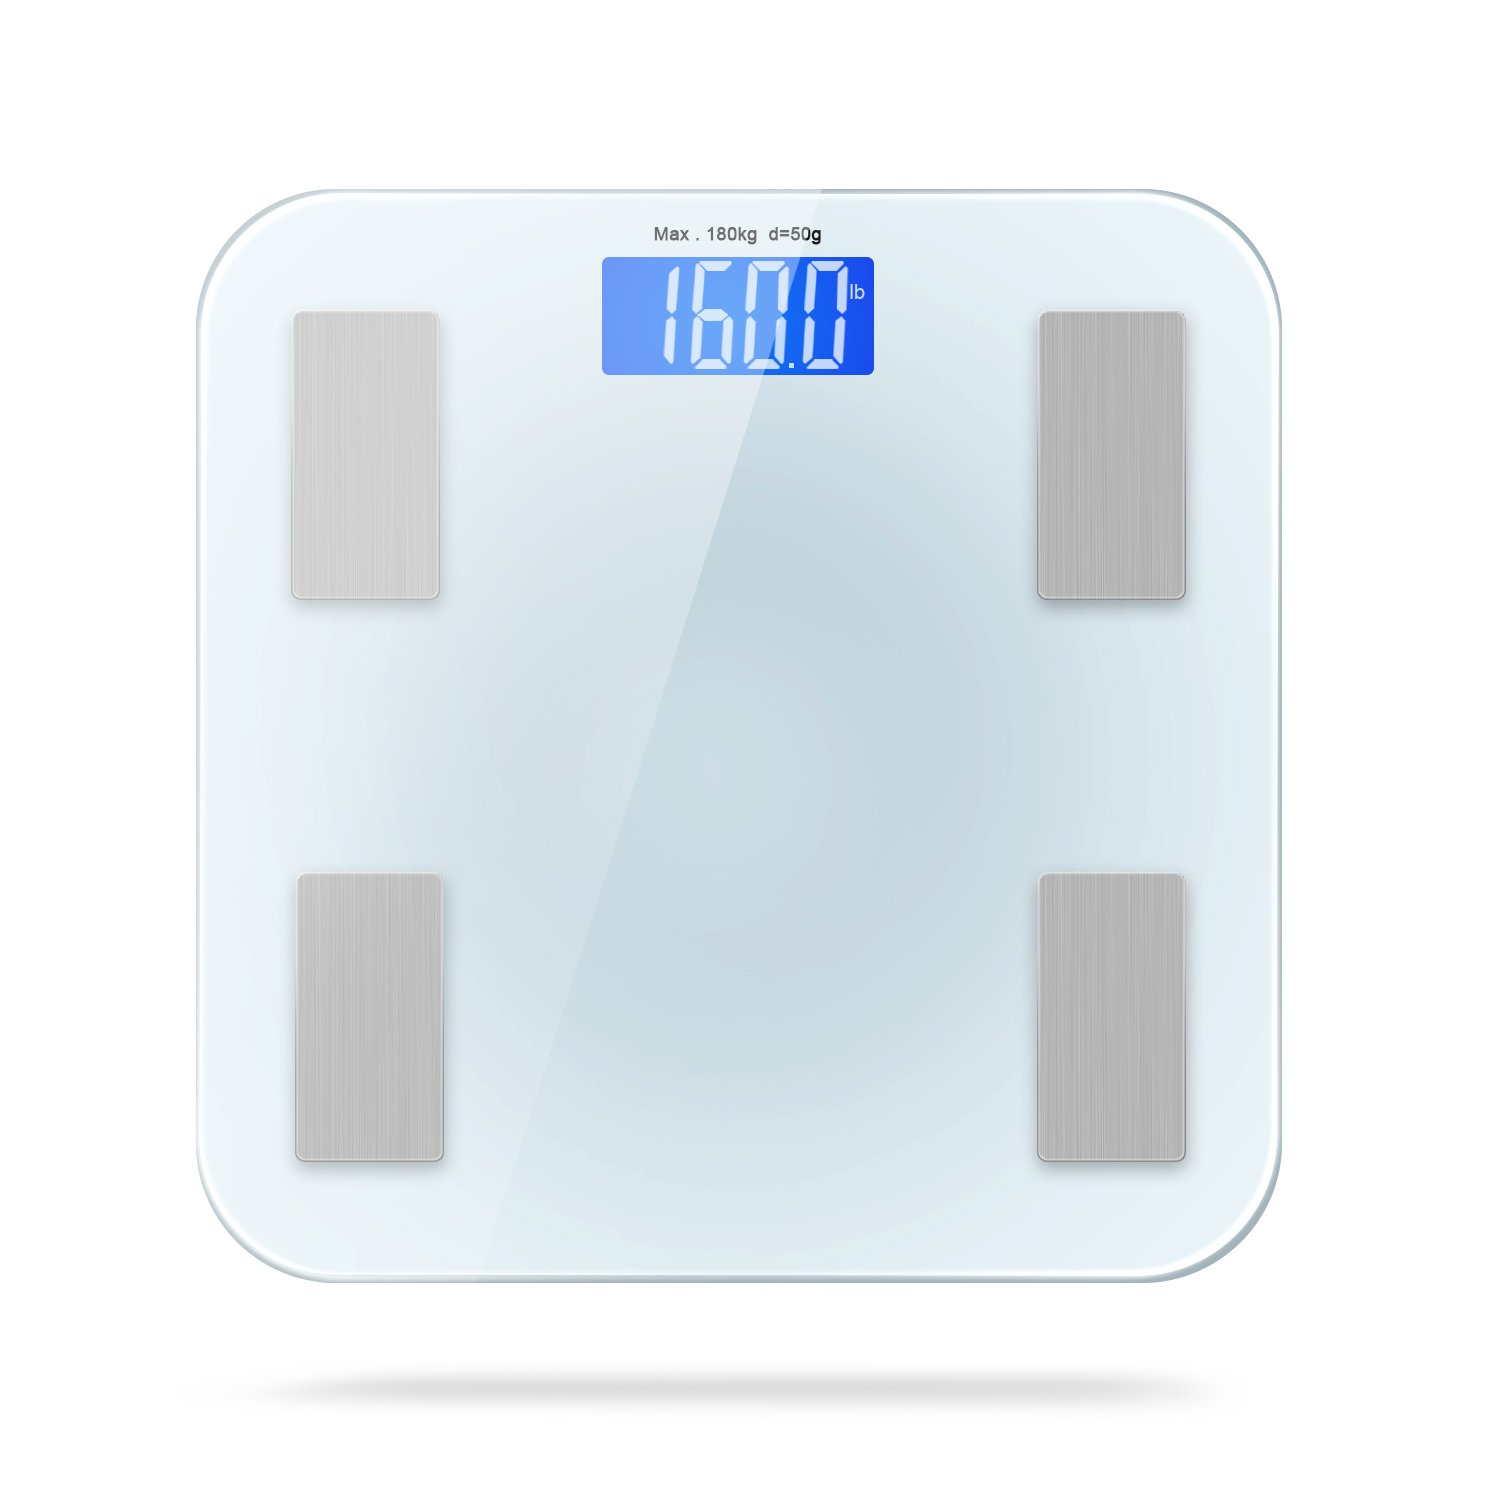 Adoric Smart Scale Bathroom Scale with Free APP for Android and IOS, Body Composition Analysis Measuring Weight, Bone, Water, Muscle, Fat, BMI, BMR by Adoric (Image #7)